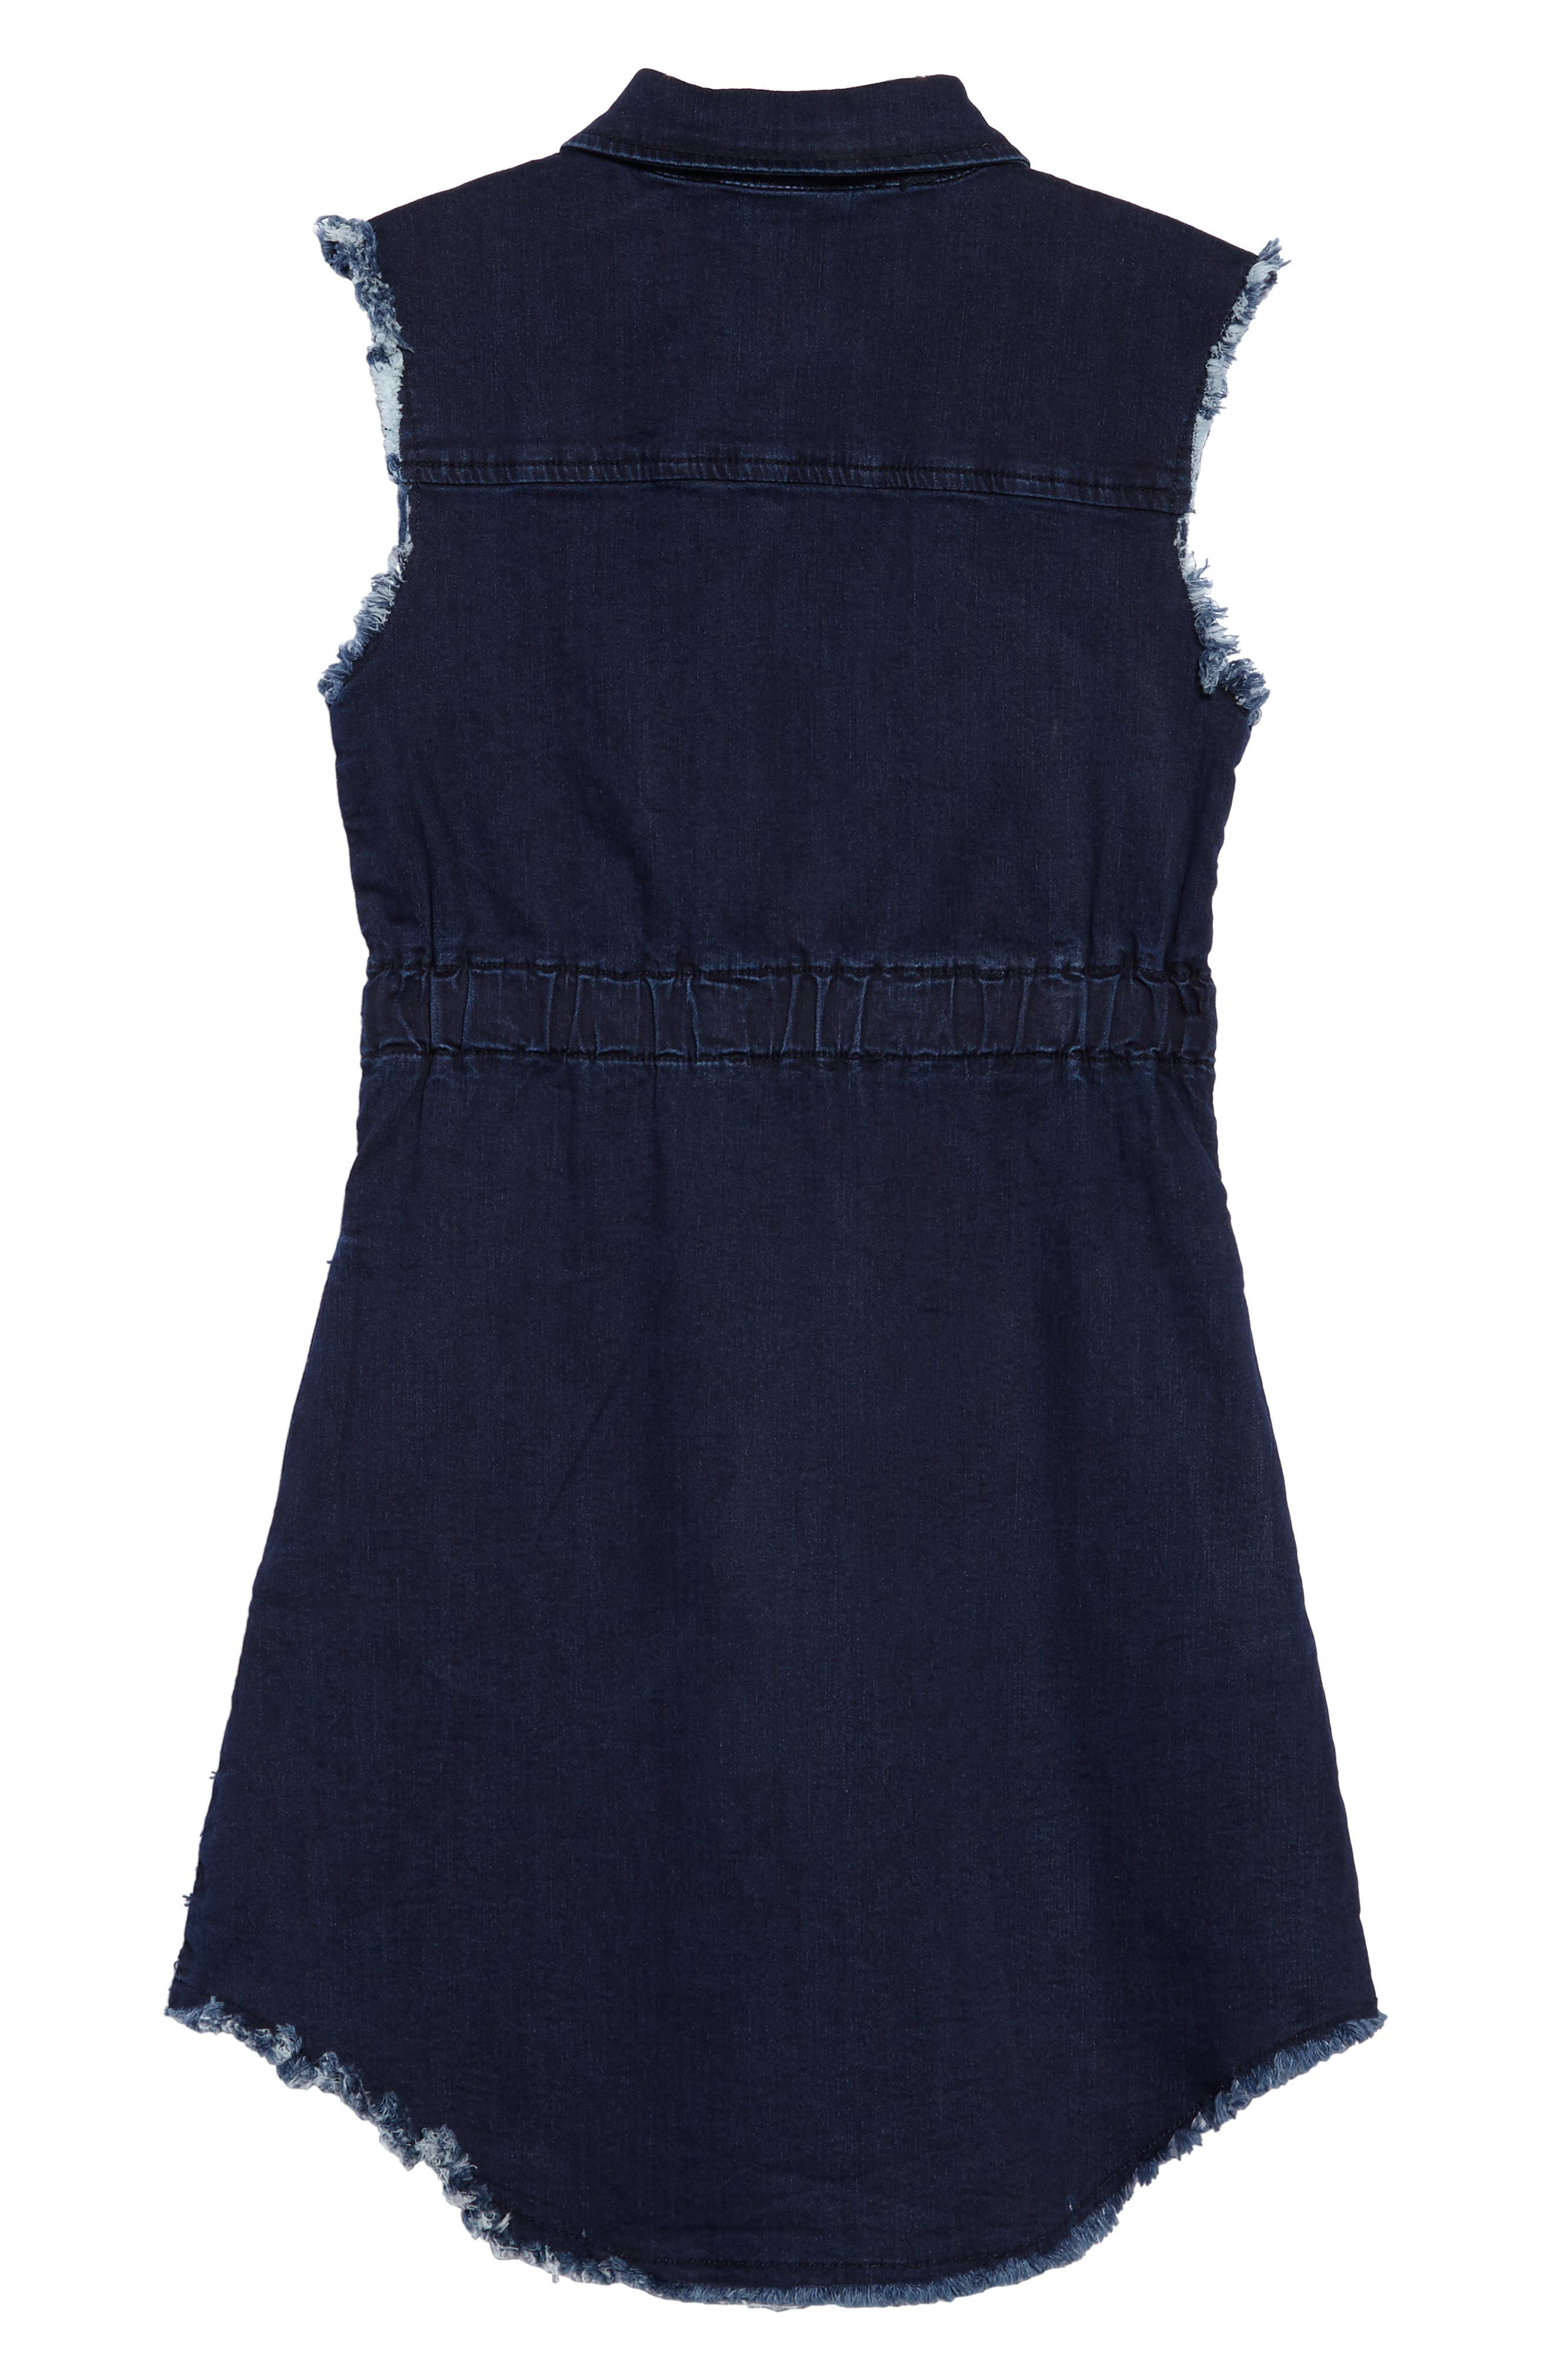 Alternate Image 2  - ag adriano goldschmied kids Rosanna Chambray Dress (Big Girls)